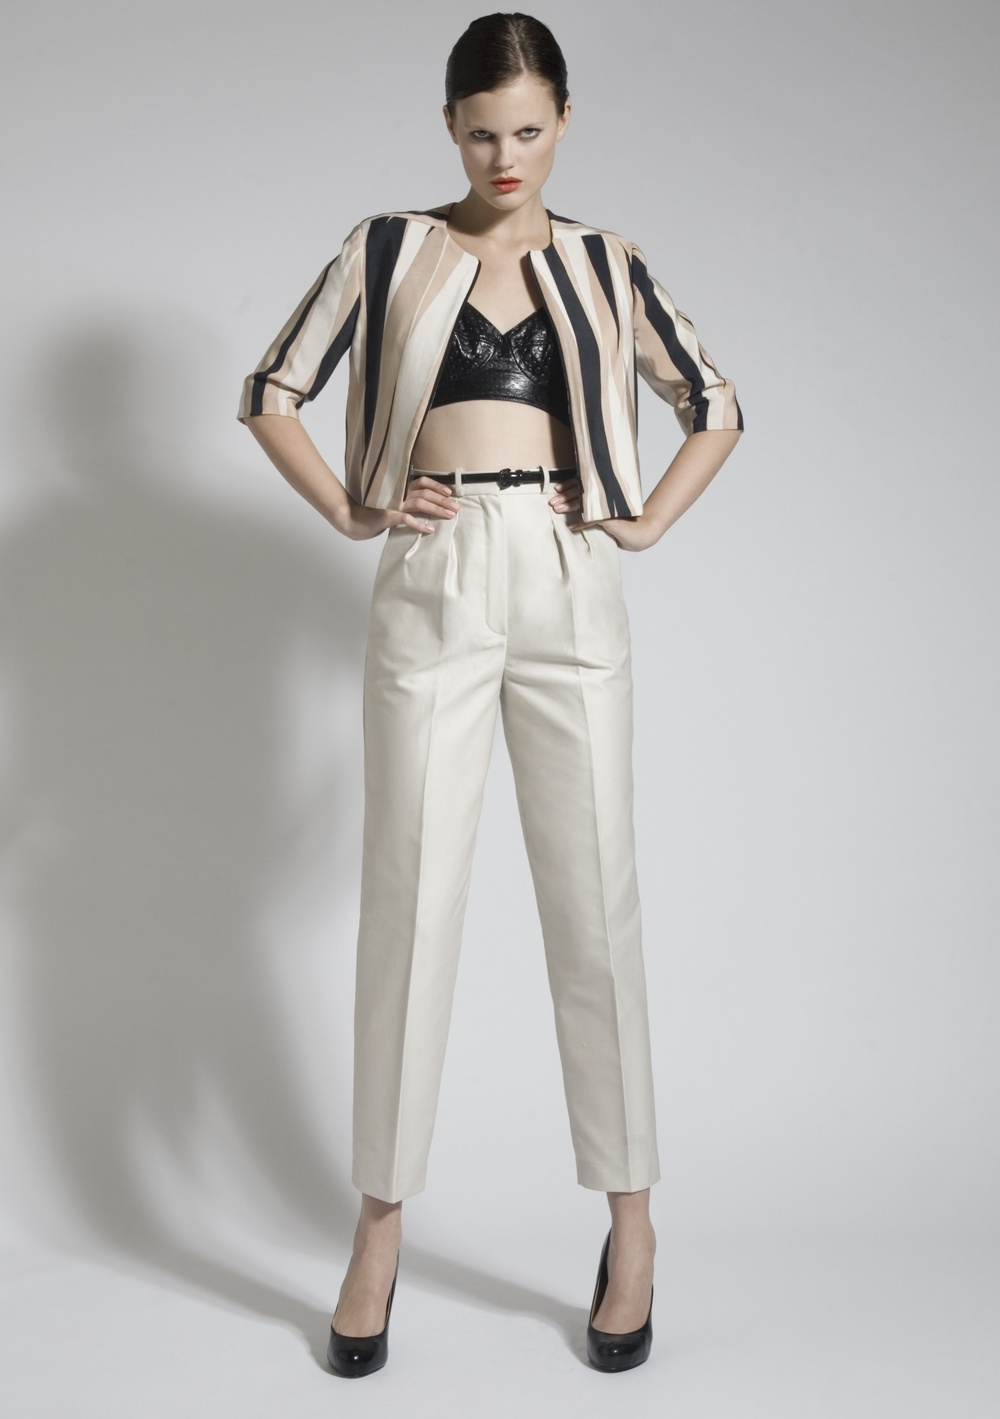 8 Silk Screen Crop Jacket, Leather Bra, Cotton Trousers.jpg